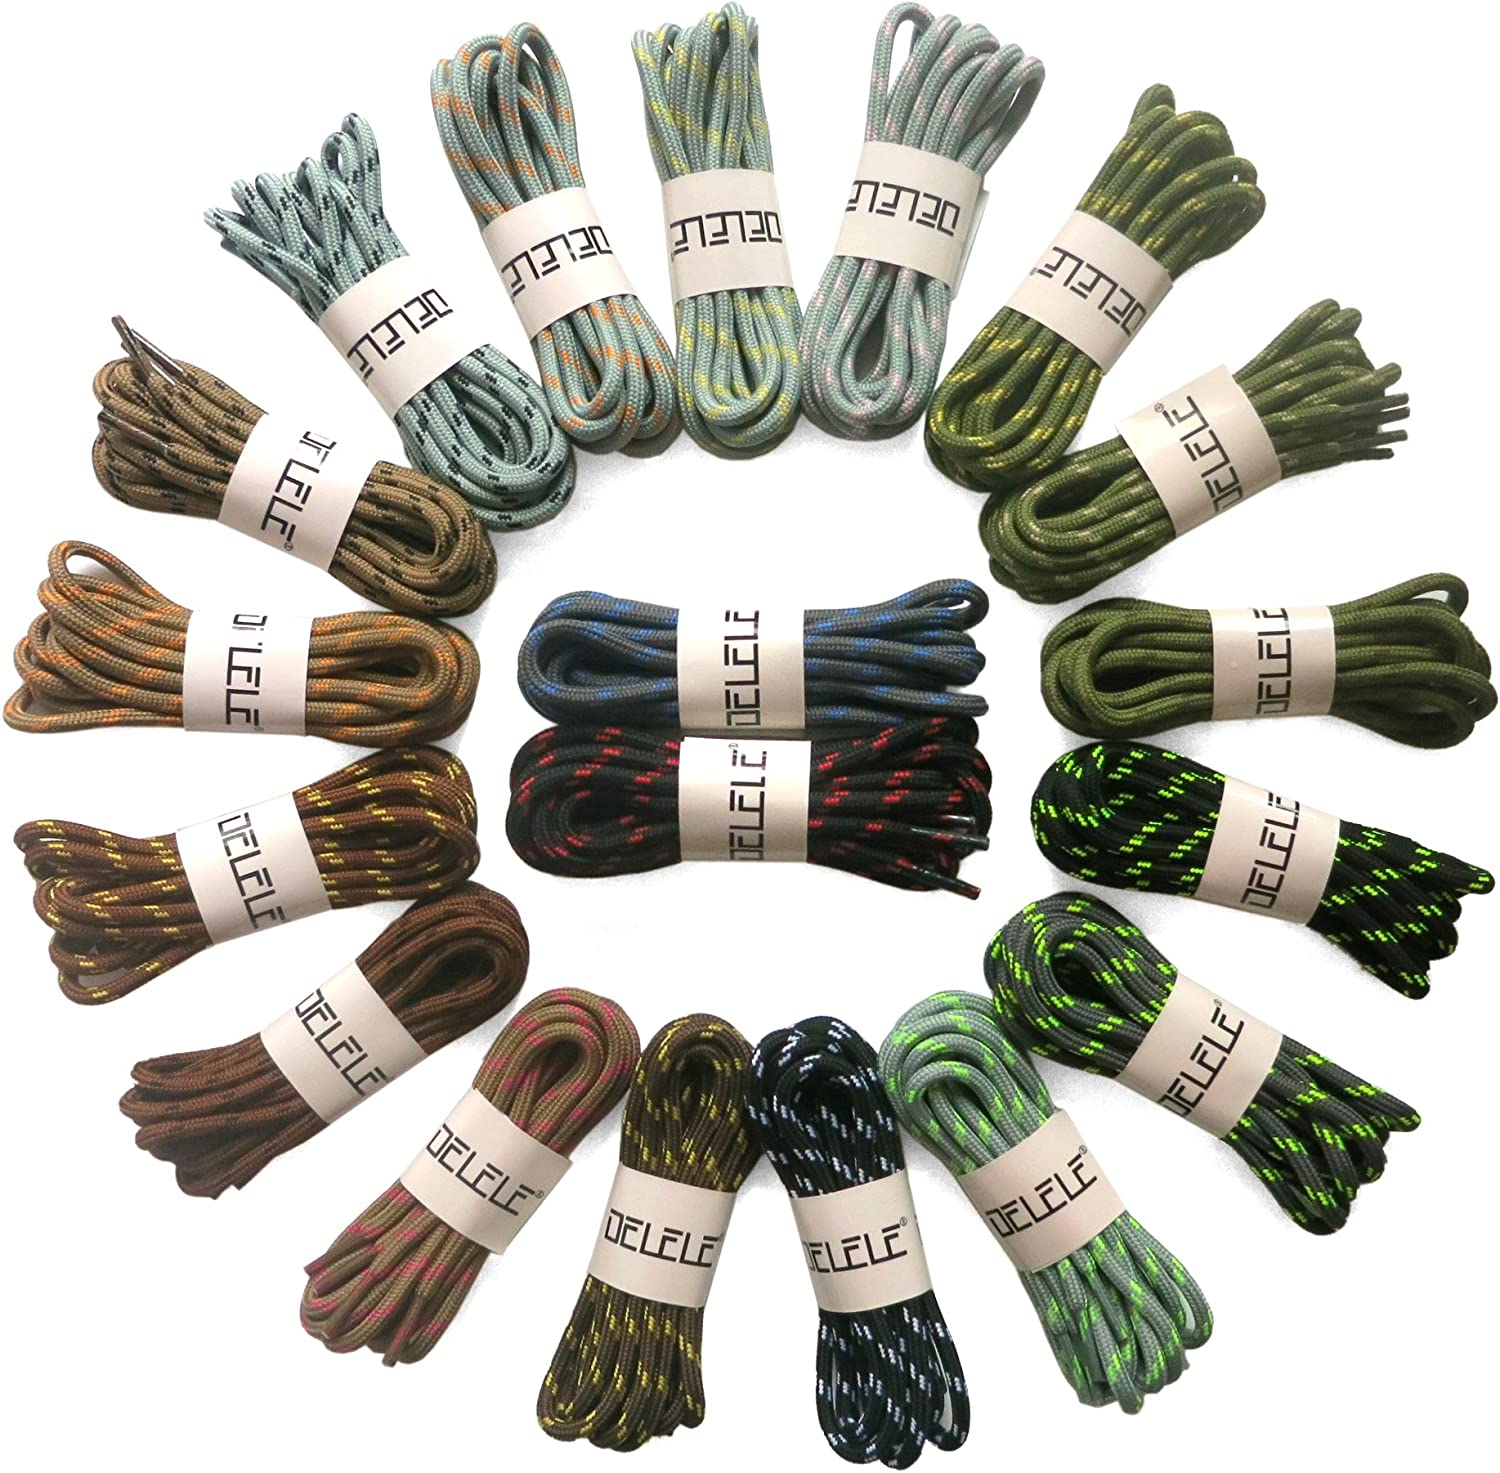 DELELE 2 Pair Work Boot Laces Outdoor Mountaineering Hiking Walking Shoelaces: Shoes